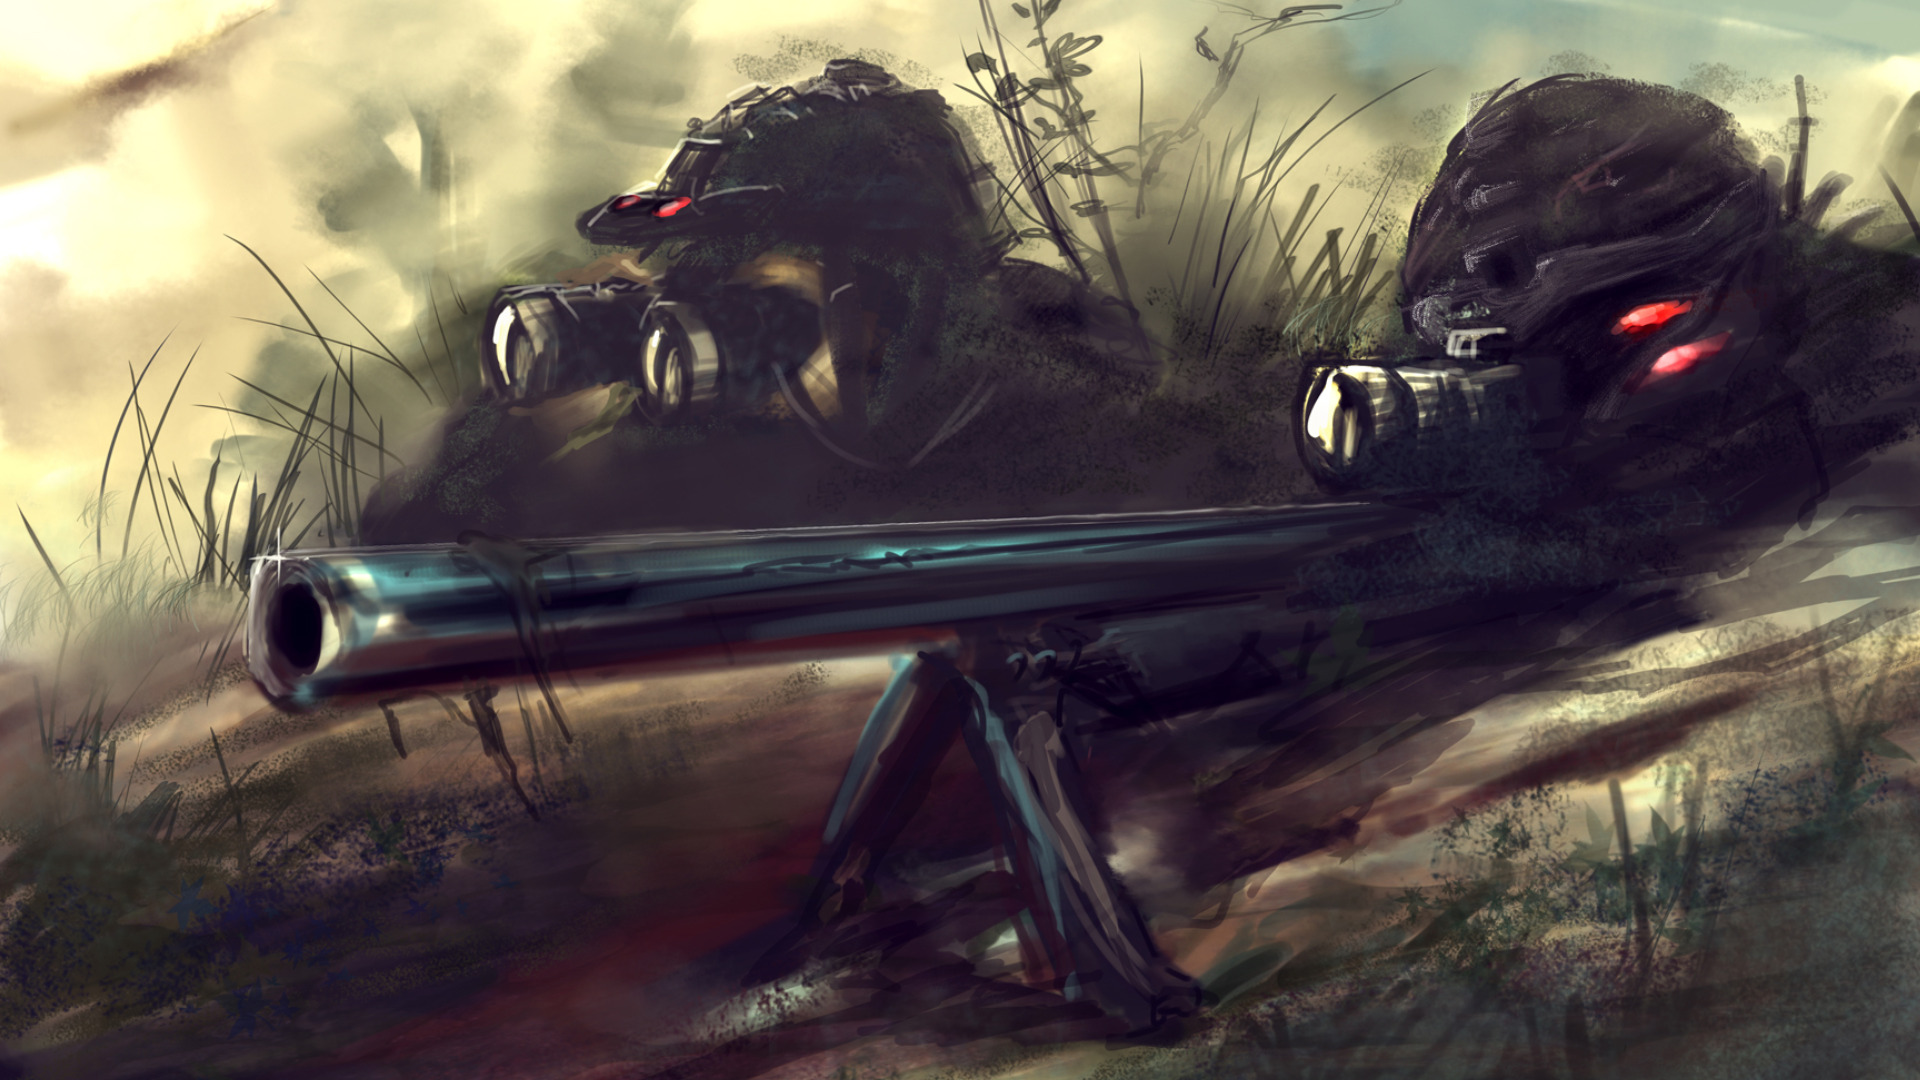 Drawn snipers wallpaper For Download Images Top Sniper